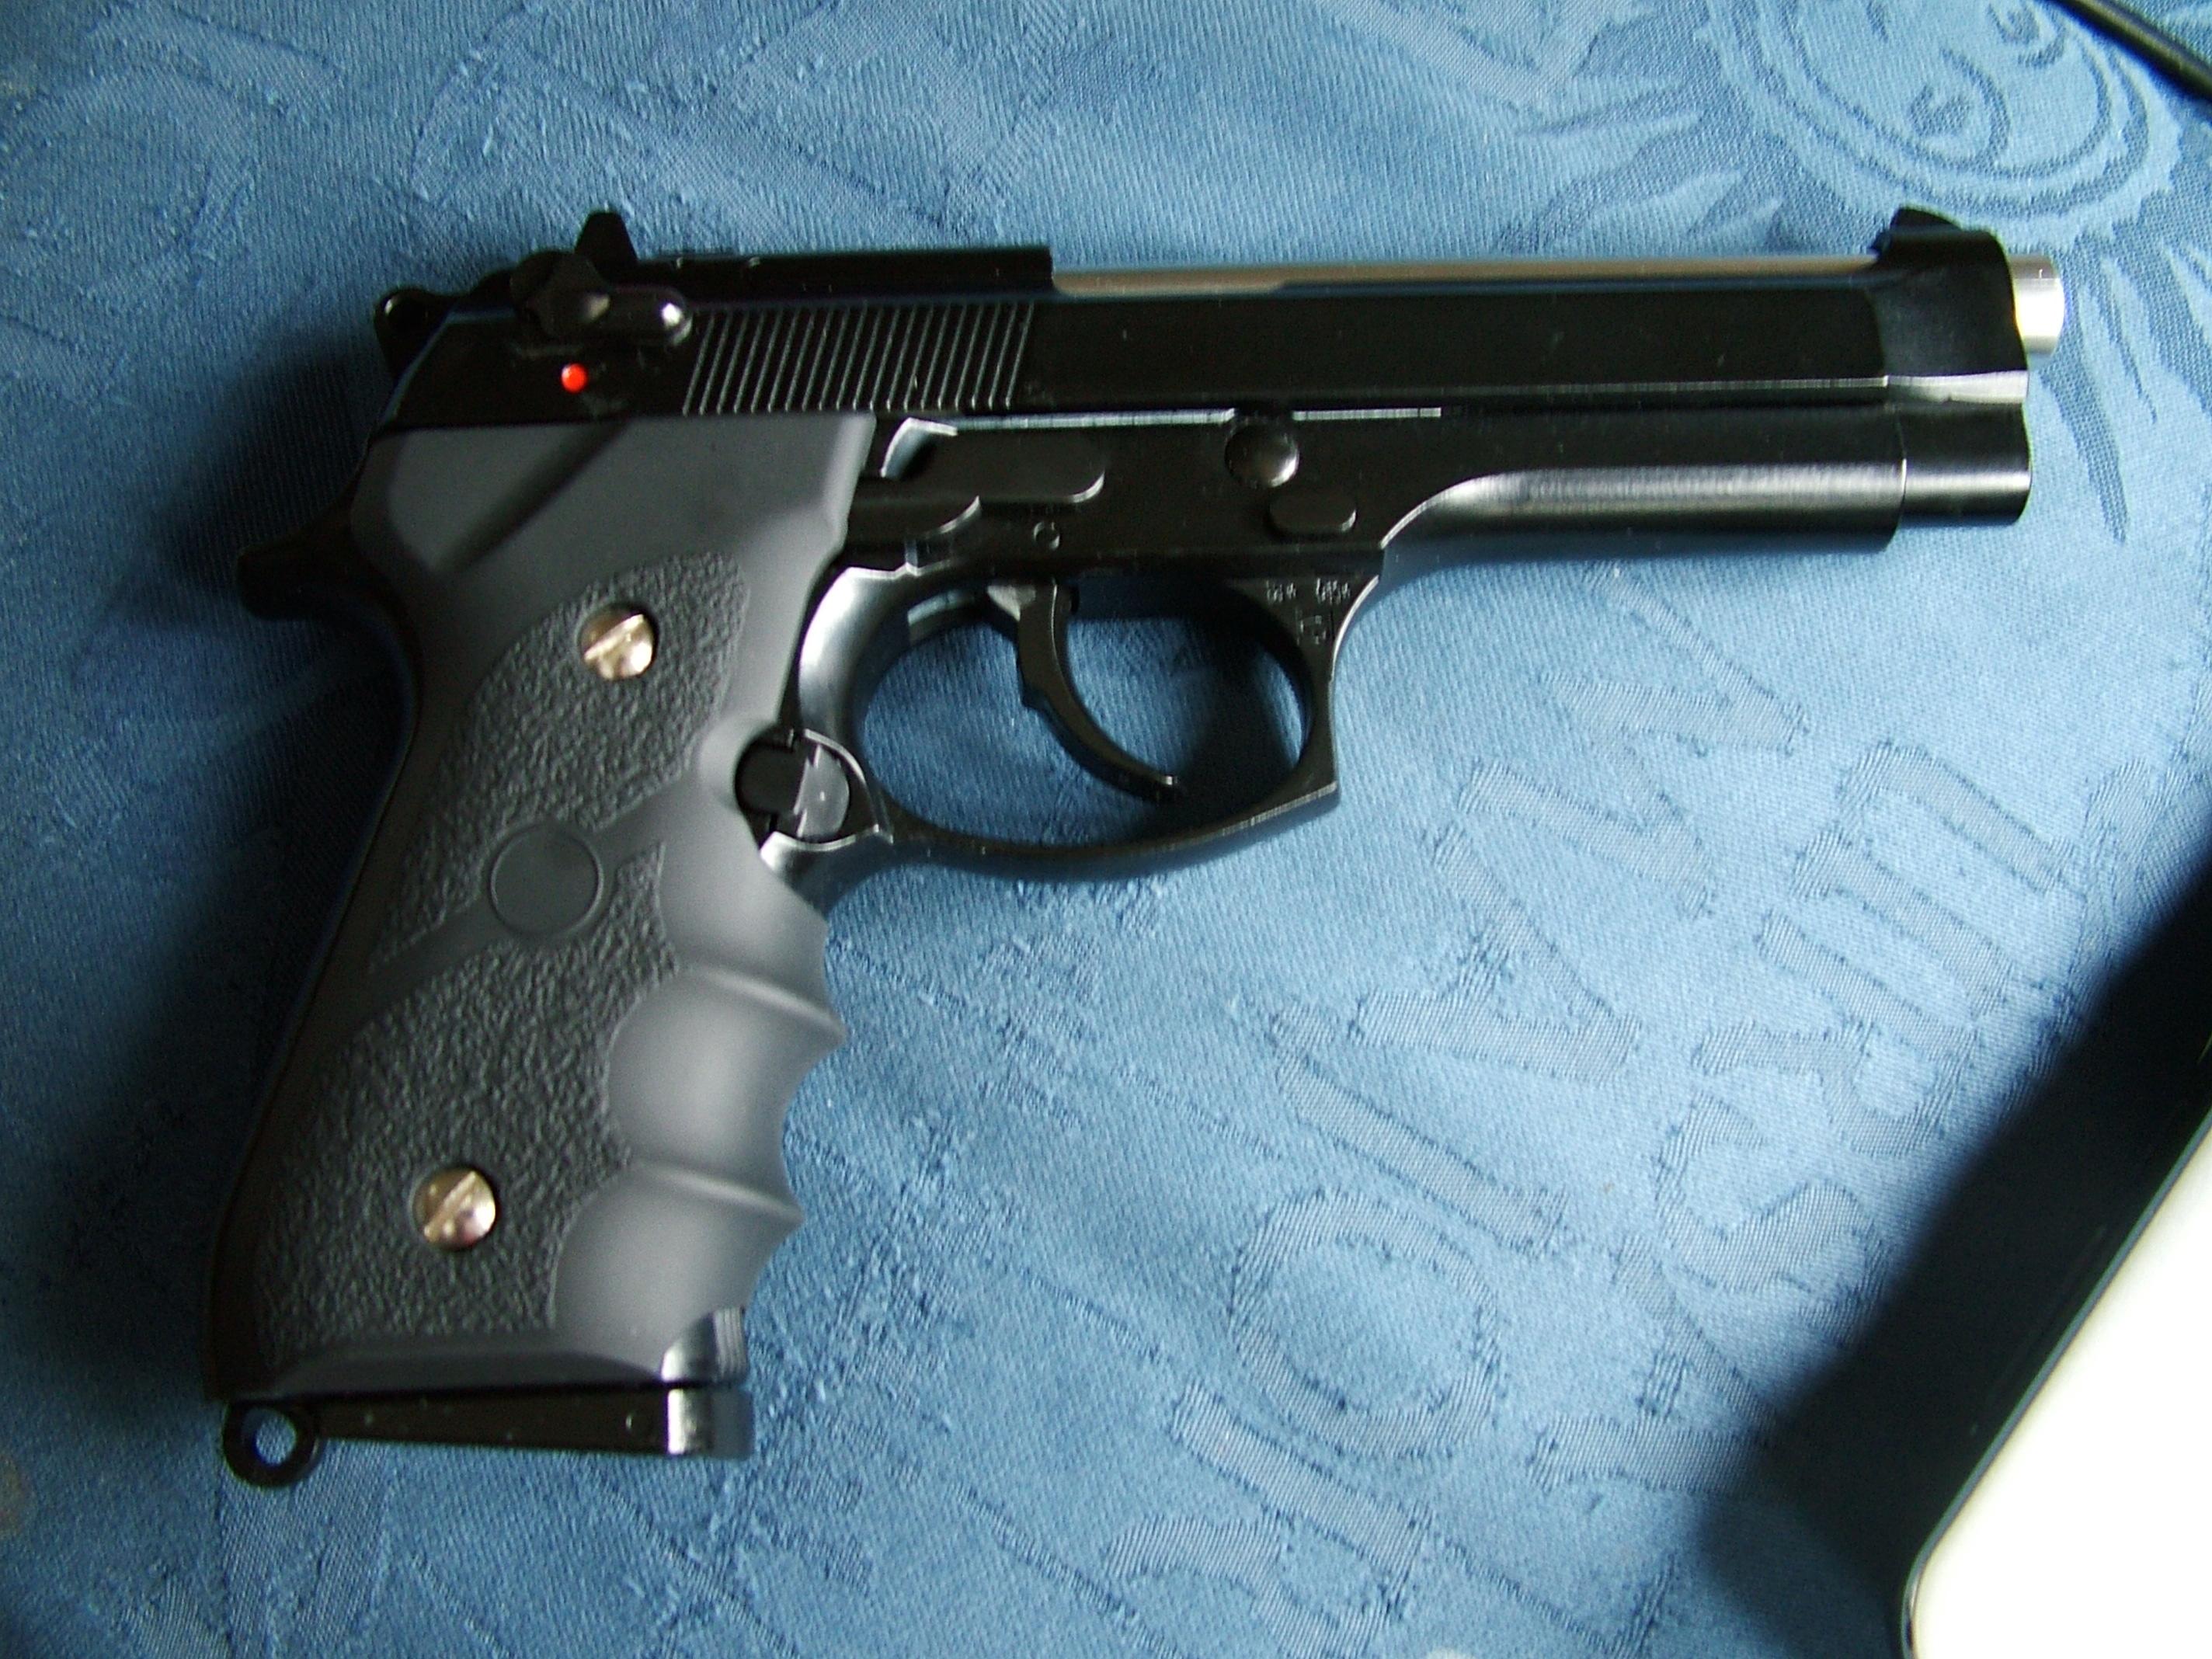 Picture of Basic Gas Blow Back Airsoft Pistol Maintenance: FIeld Stripping and Lubricating.